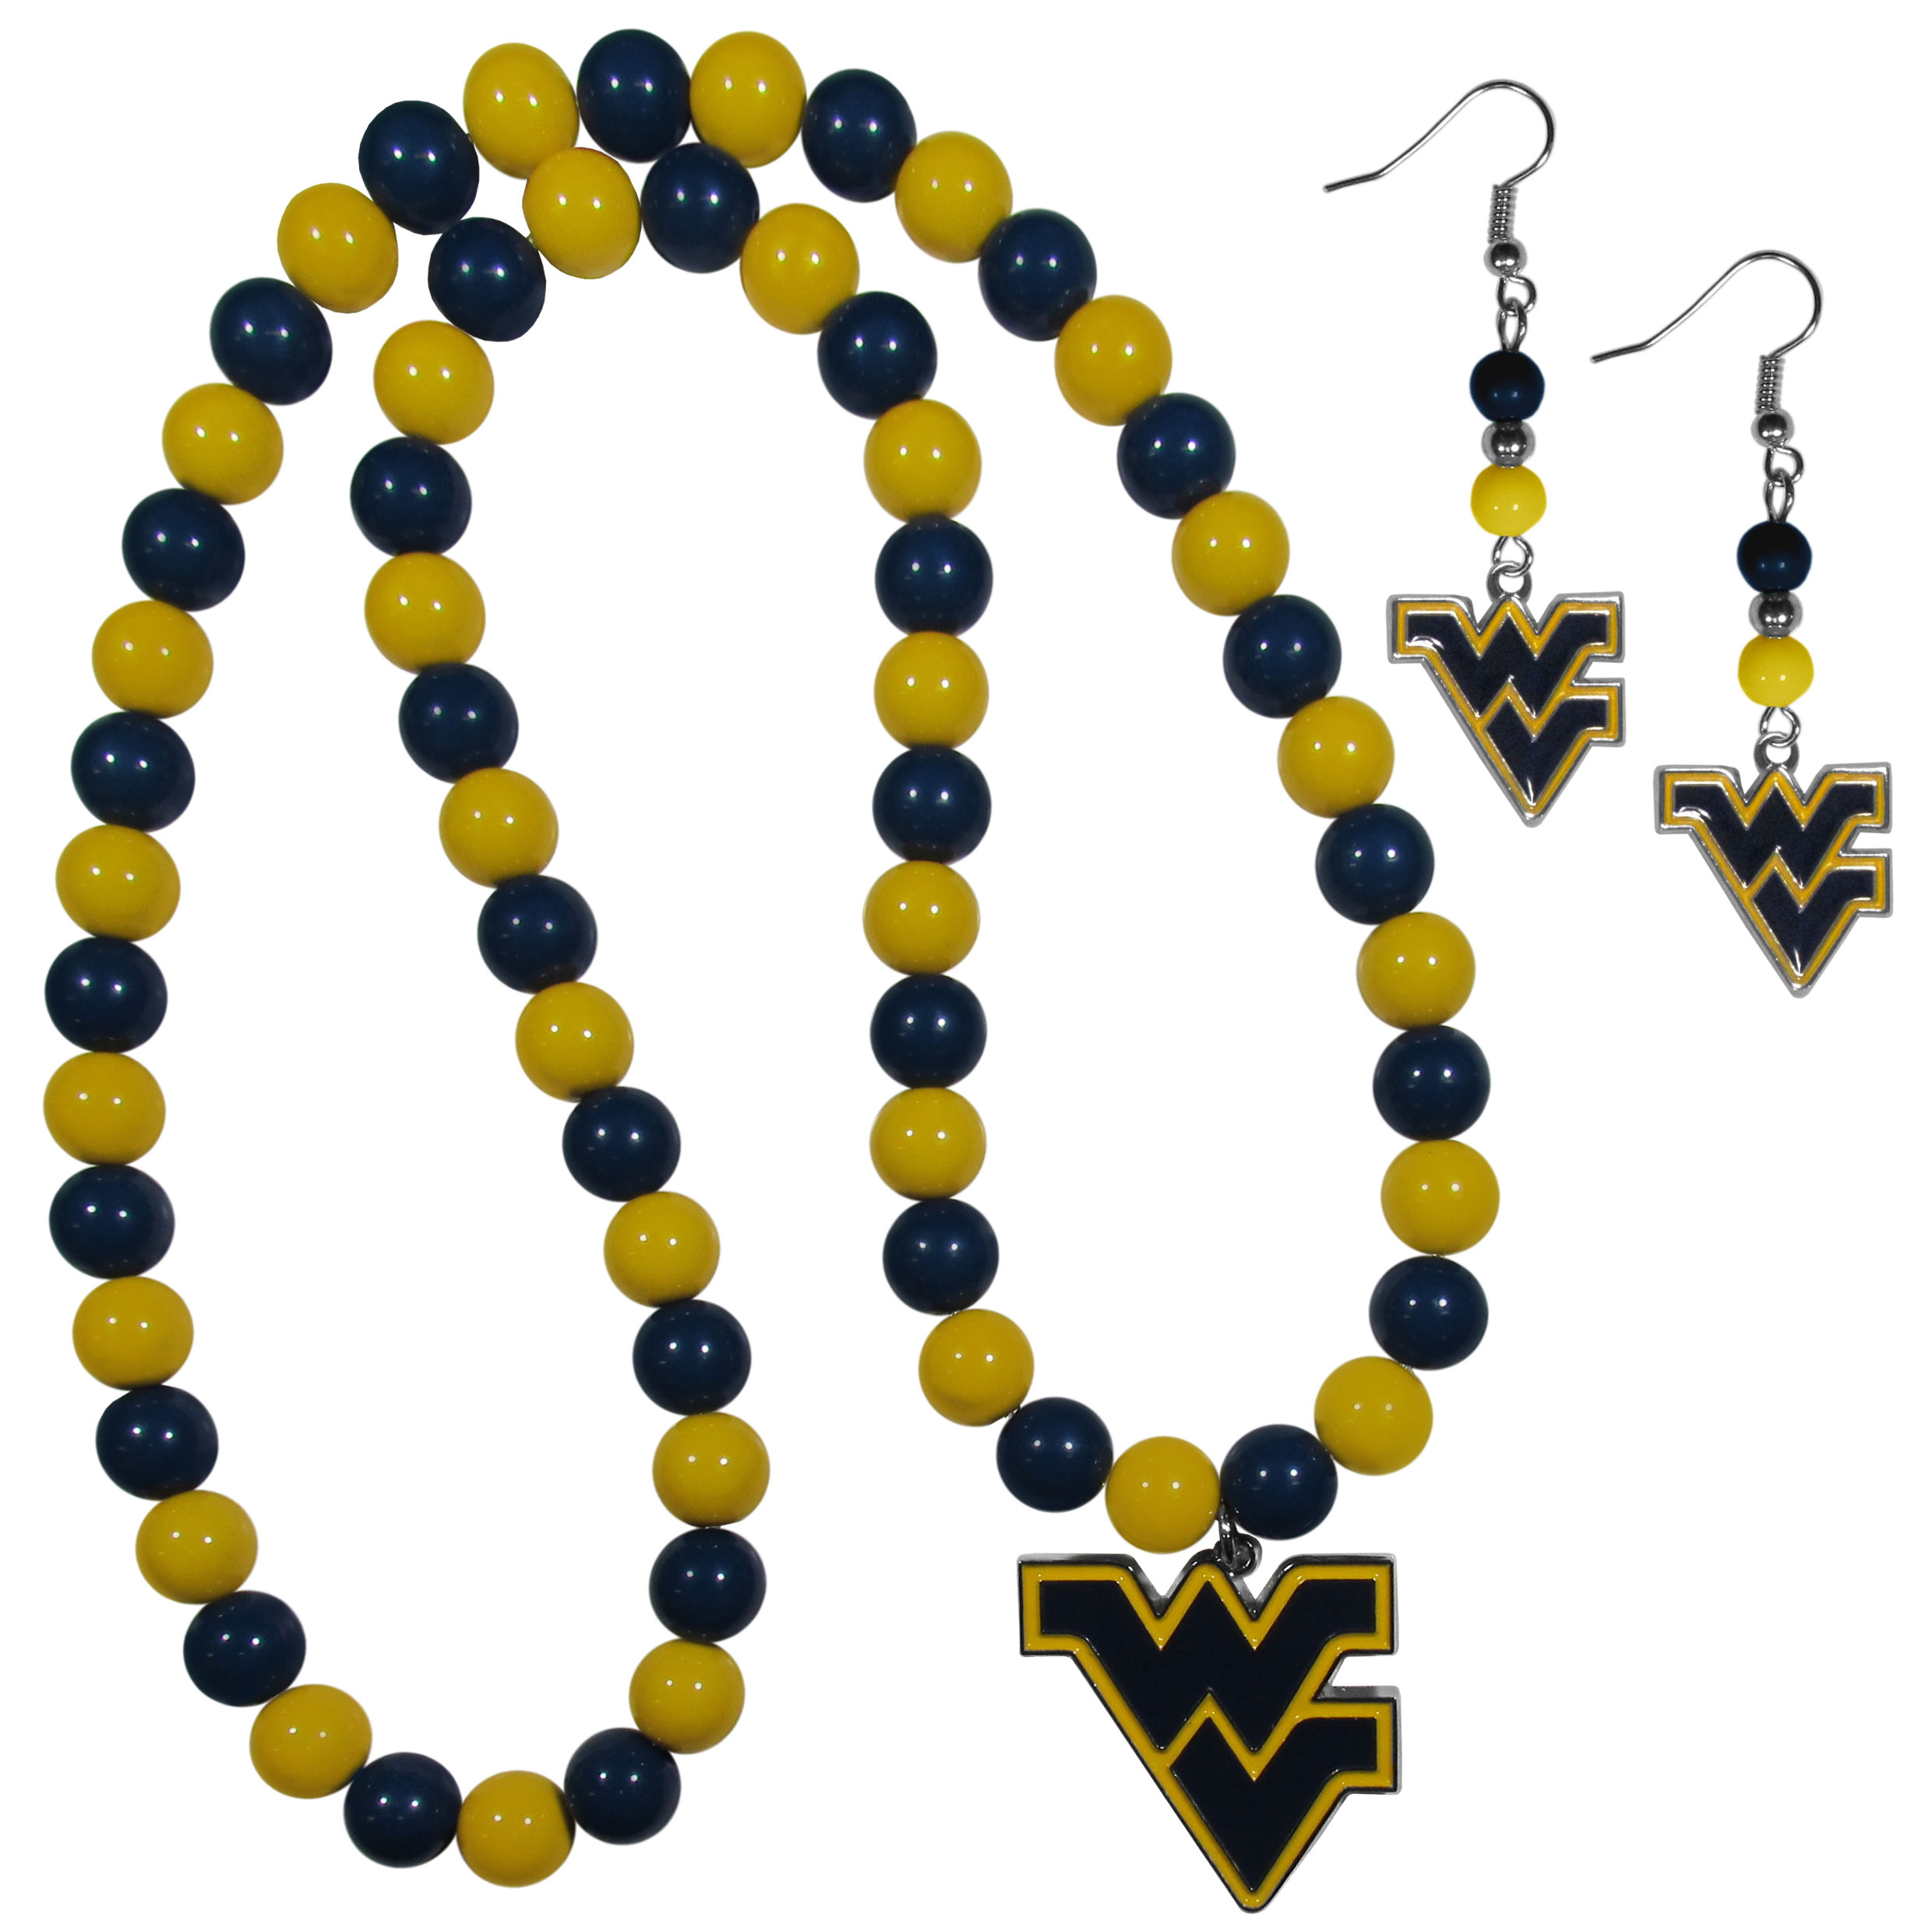 W. Virginia Mountaineers Fan Bead Earrings and Necklace Set - These fun and colorful W. Virginia Mountaineers fan bead jewelry pieces are an eyecatching way to show off your team spirit. The earrings feature hypoallergenic, nickel free fishhook post and 2 team colored beads with a beautifully carved team charm to finish this attractive dangle look. The mathcing bracelet has alternating team colored beads on a stretch cord and features a matching team charm.